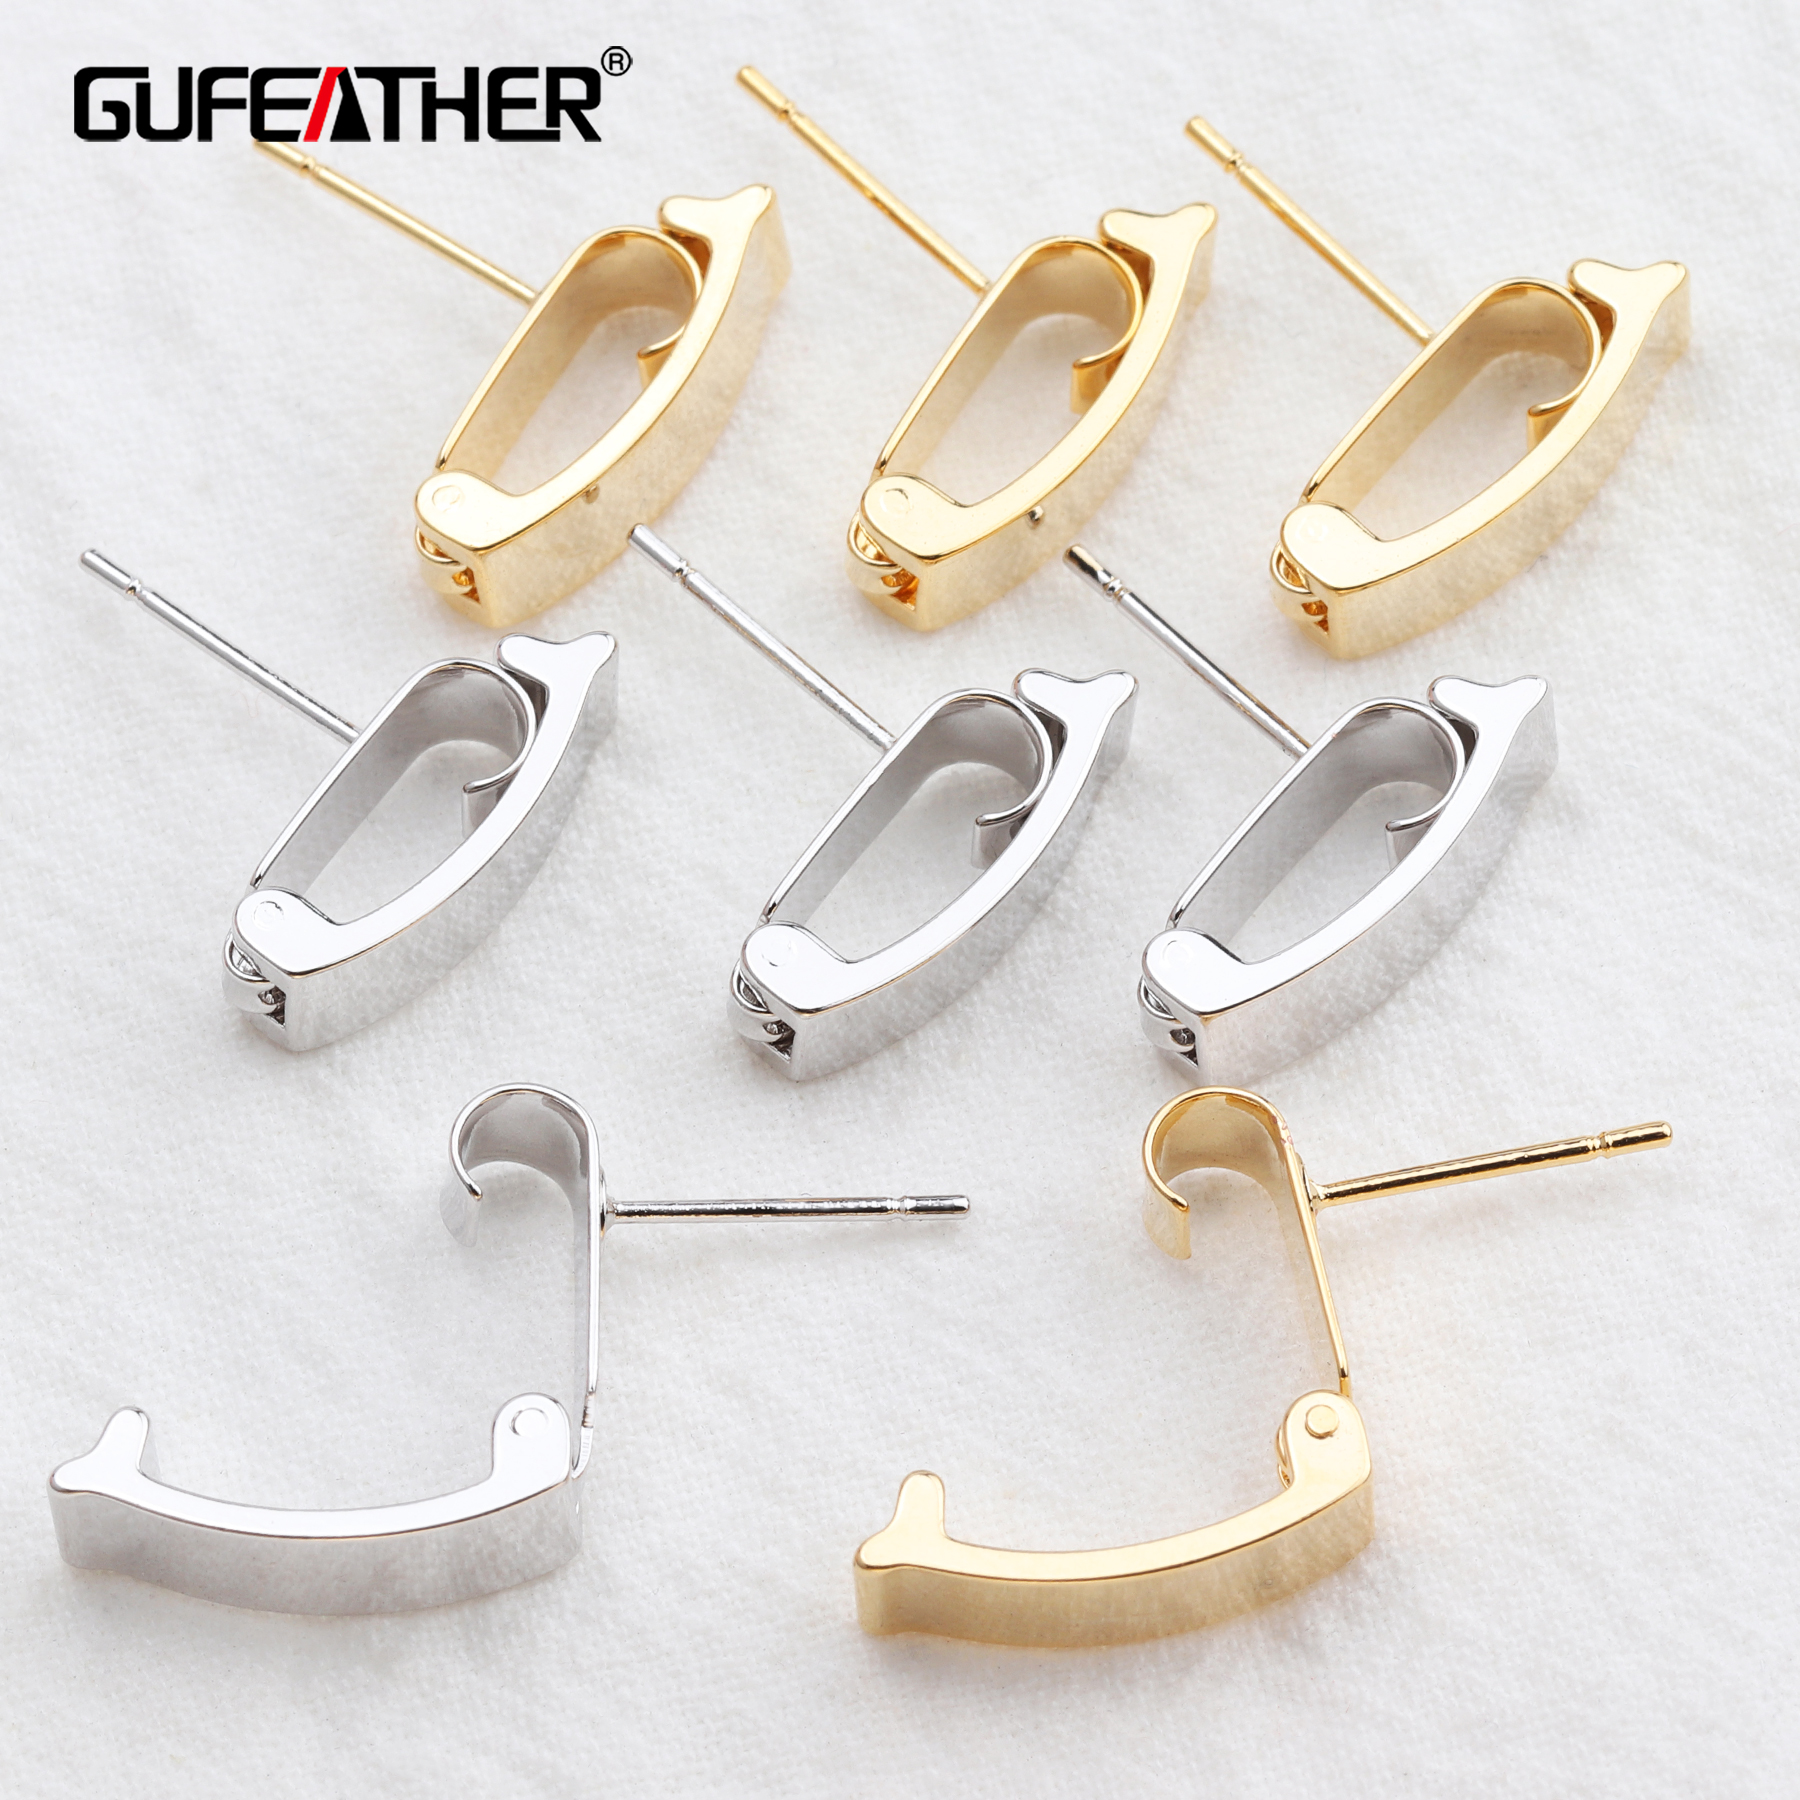 GUFEATHER M545,jewelry Accessories,18k Gold Plated,diy Earrings,hand Made,diy Accessories,jewelry Making,stud Earring,10pcs/lot